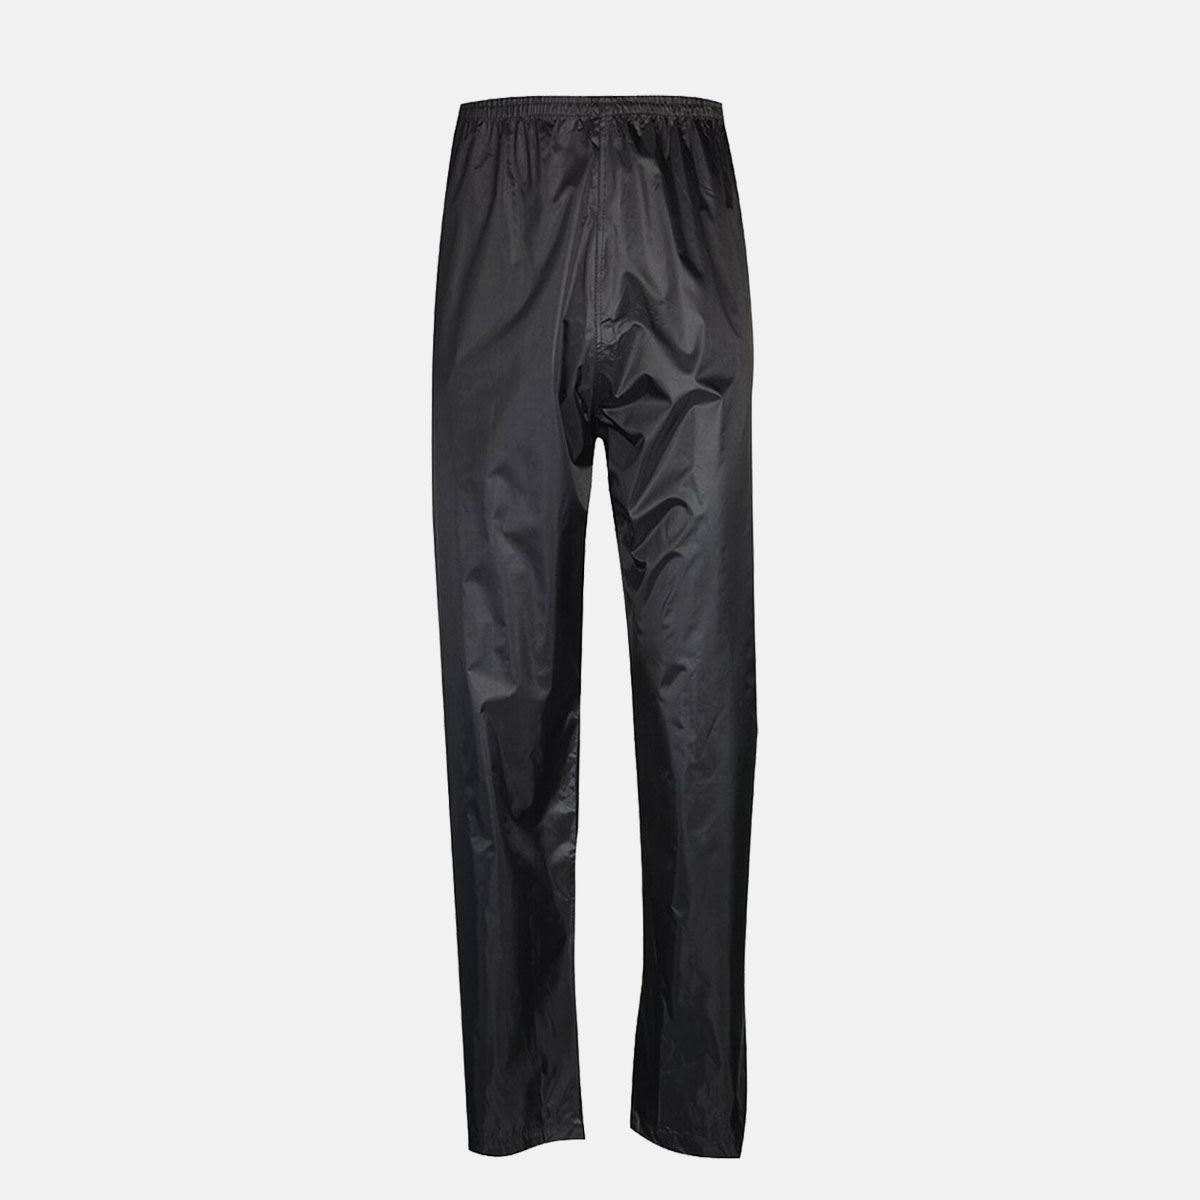 Adults Black Waterproof Over Trousers by Baum Country